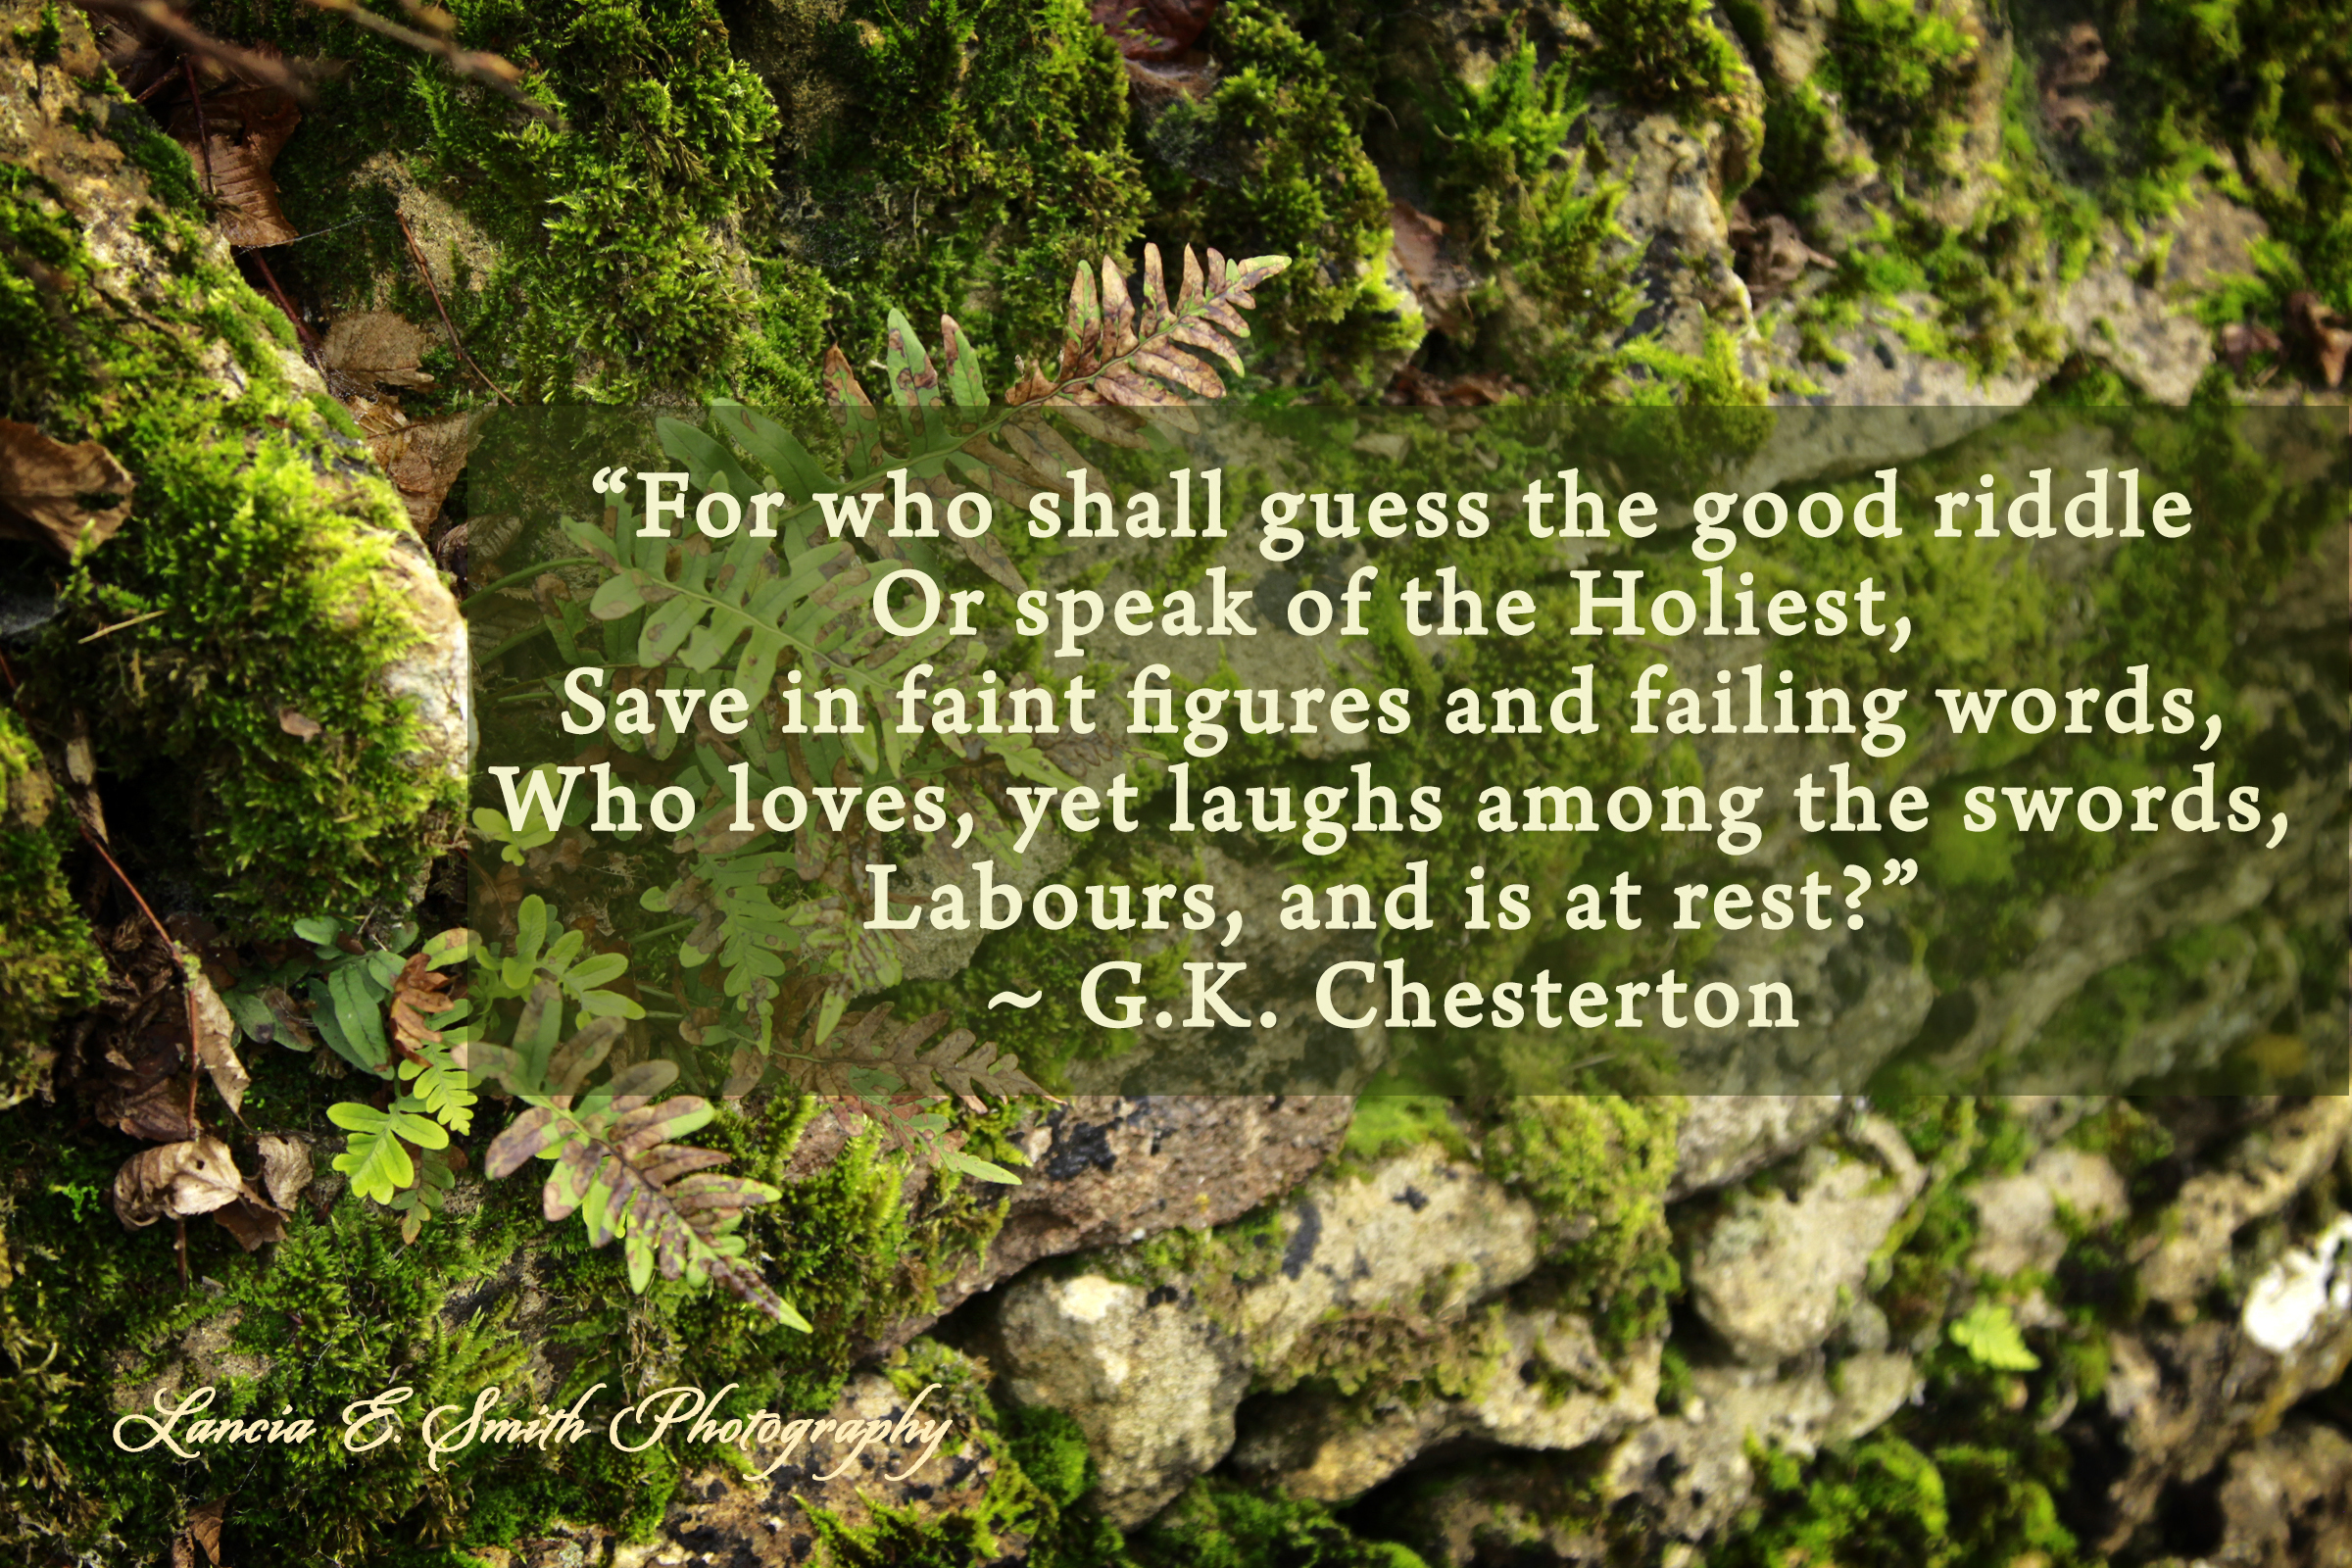 gk chesterton malcolm guite the good riddle gk chesterton middot lanciaesmith com image for the day